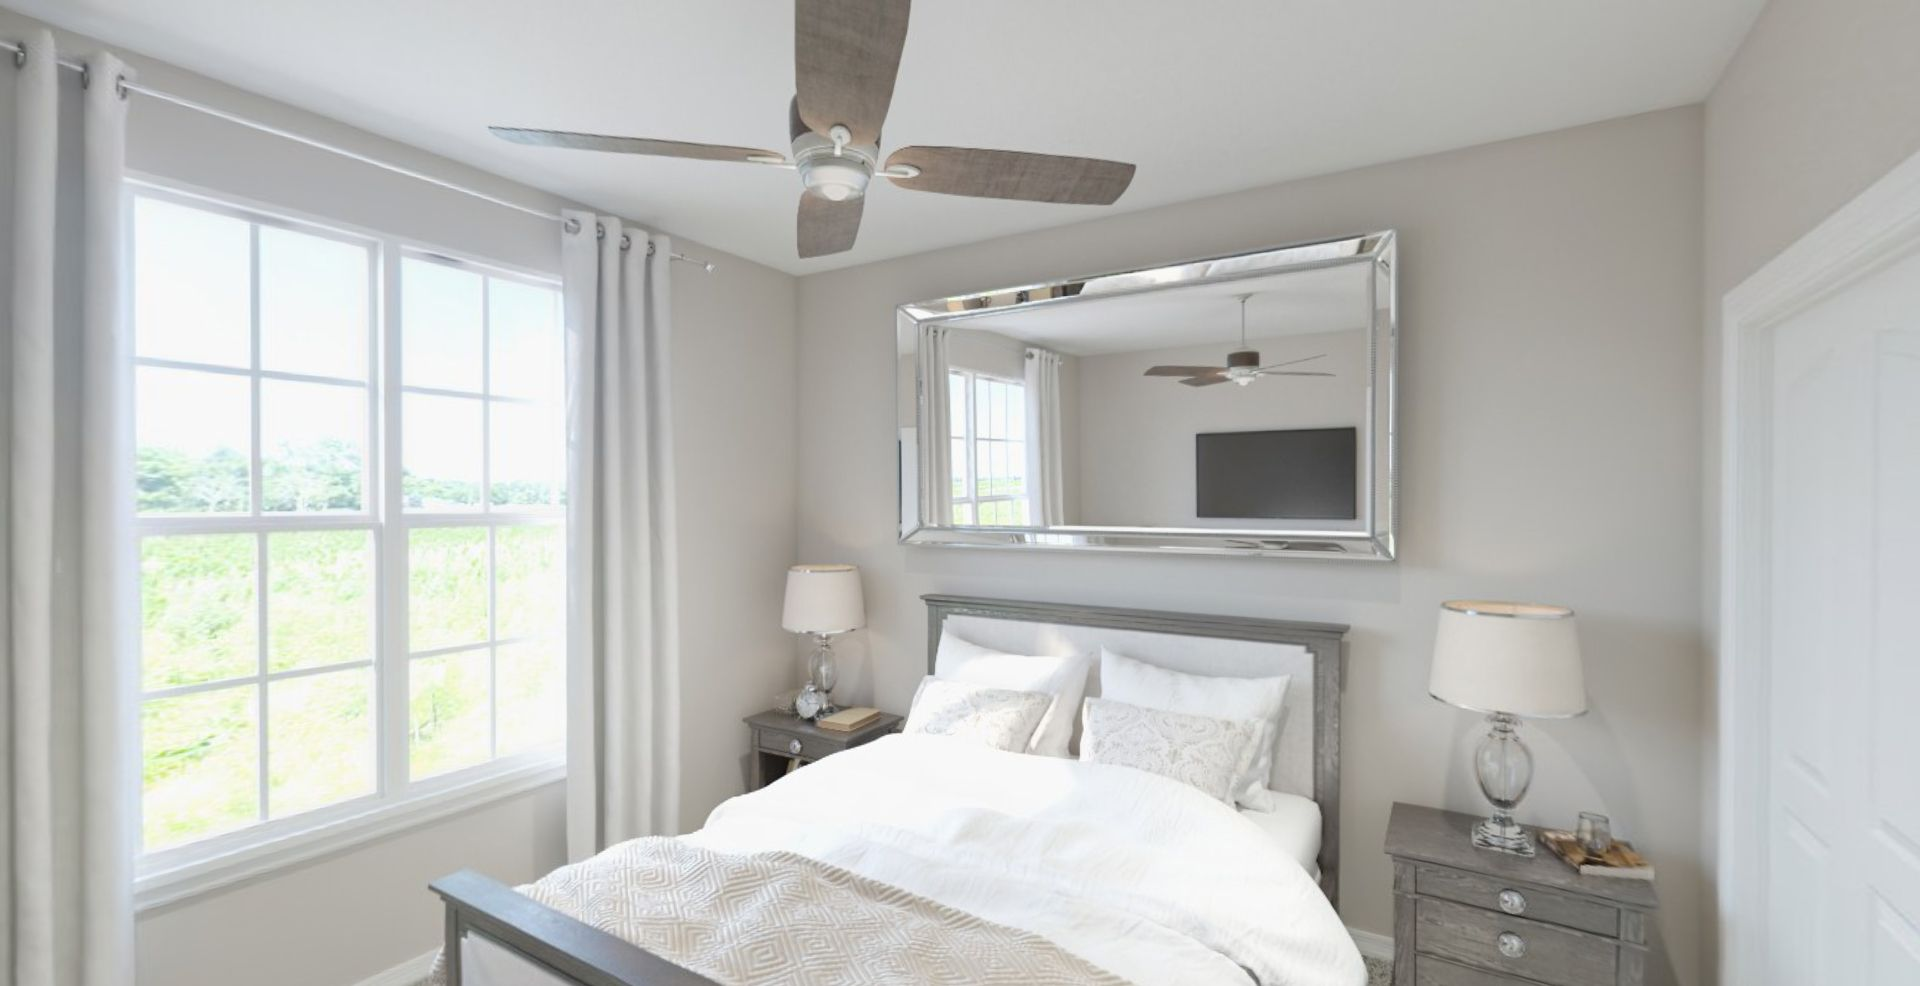 Bedroom featured in the Harmony By Olthof Homes in Gary, IN